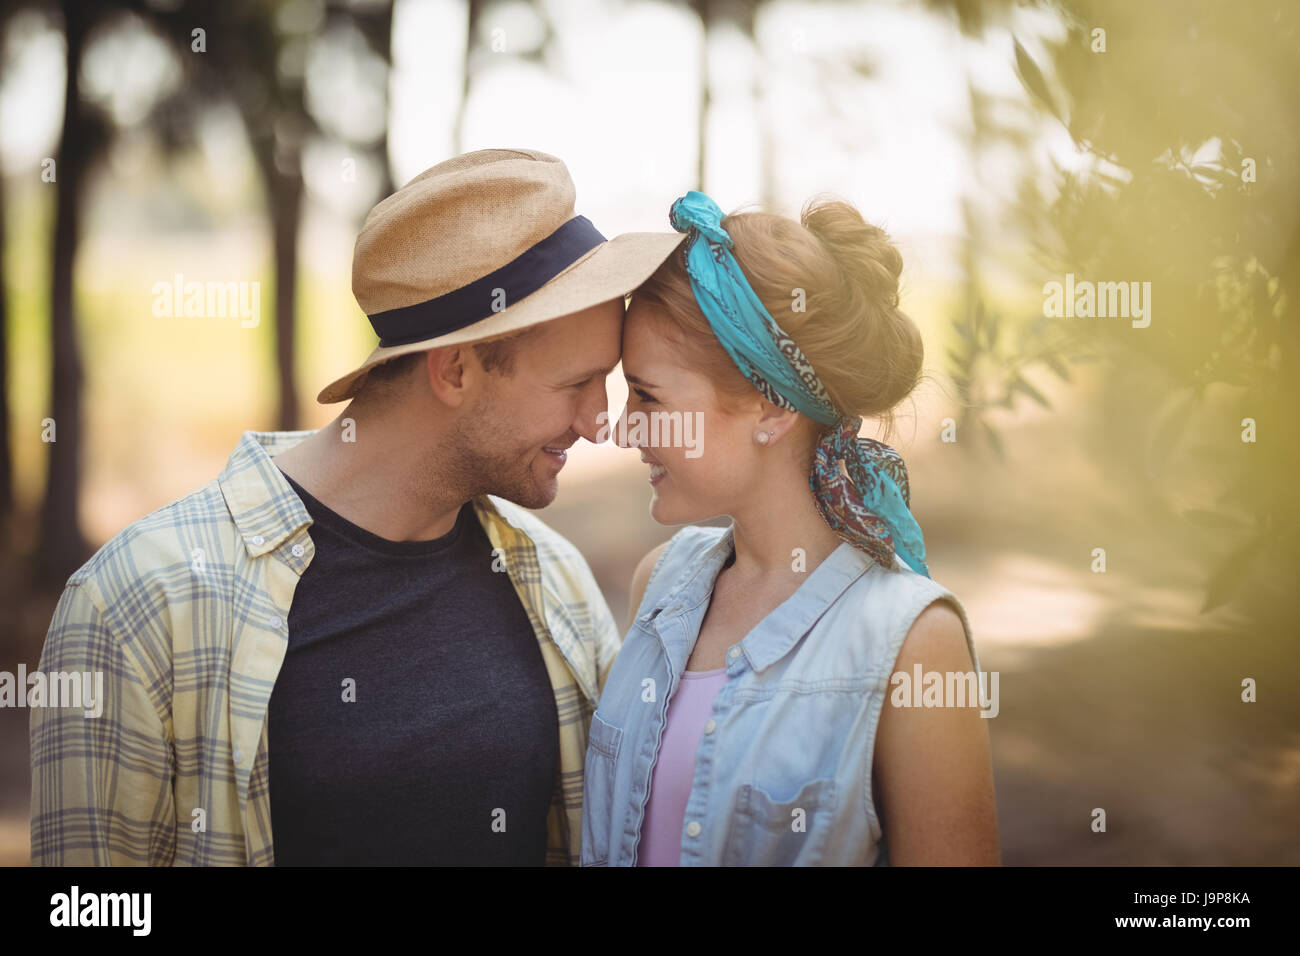 Cheerful young couple rubbing noses at olive farm - Stock Image